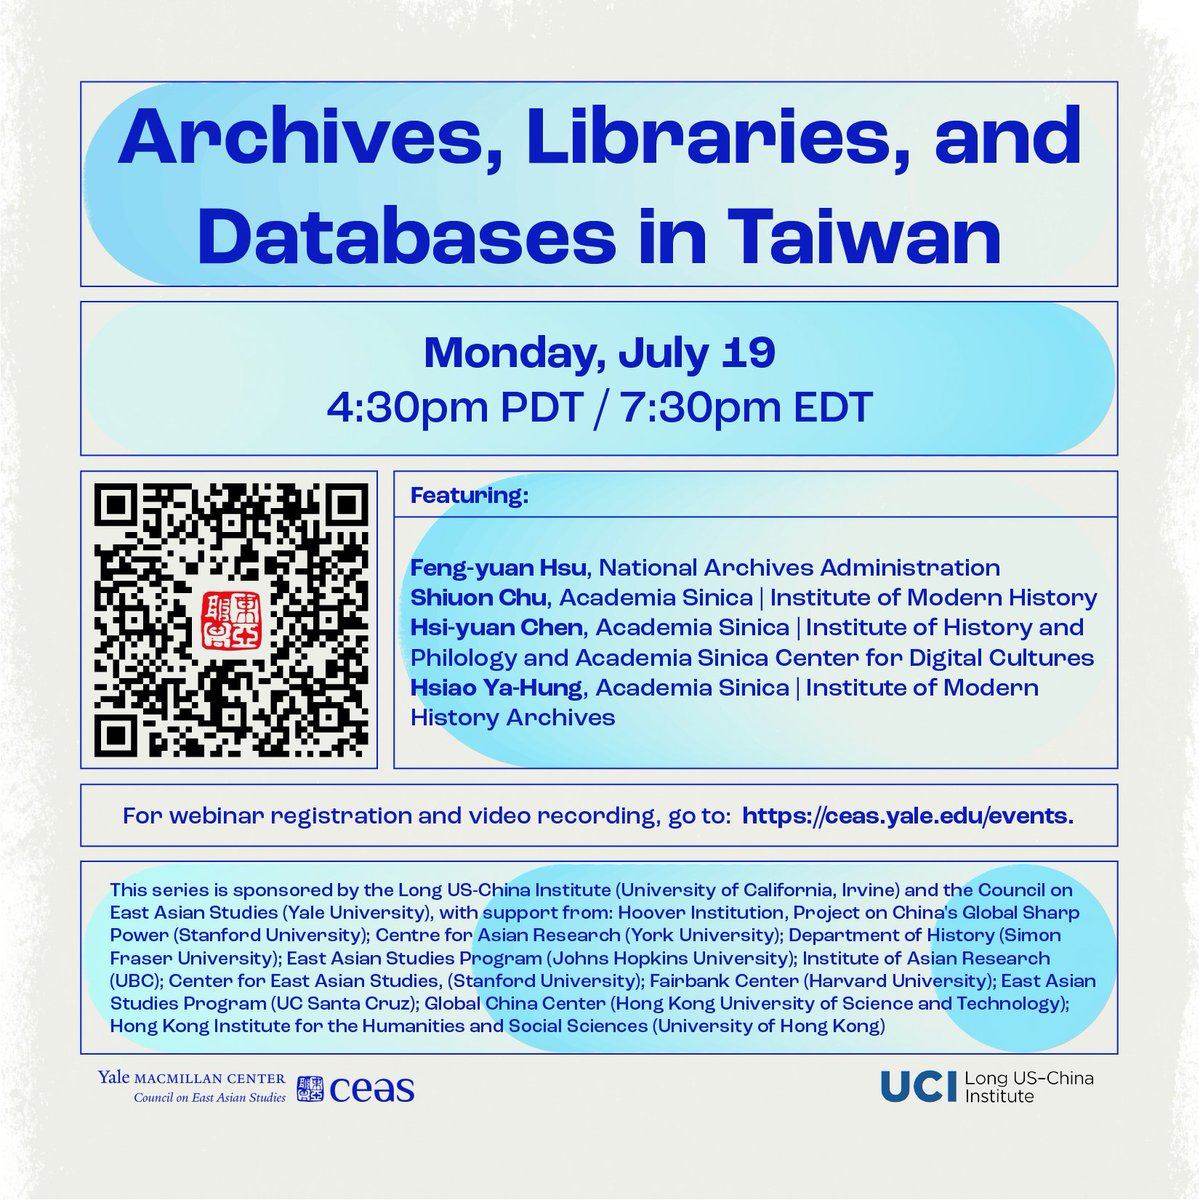 """Missed our webinar on """"Archives, Libraries, and Databases in Taiwan""""? Video is now available here: https://t.co/gEufK21liL https://t.co/qCwHCAtrKW"""